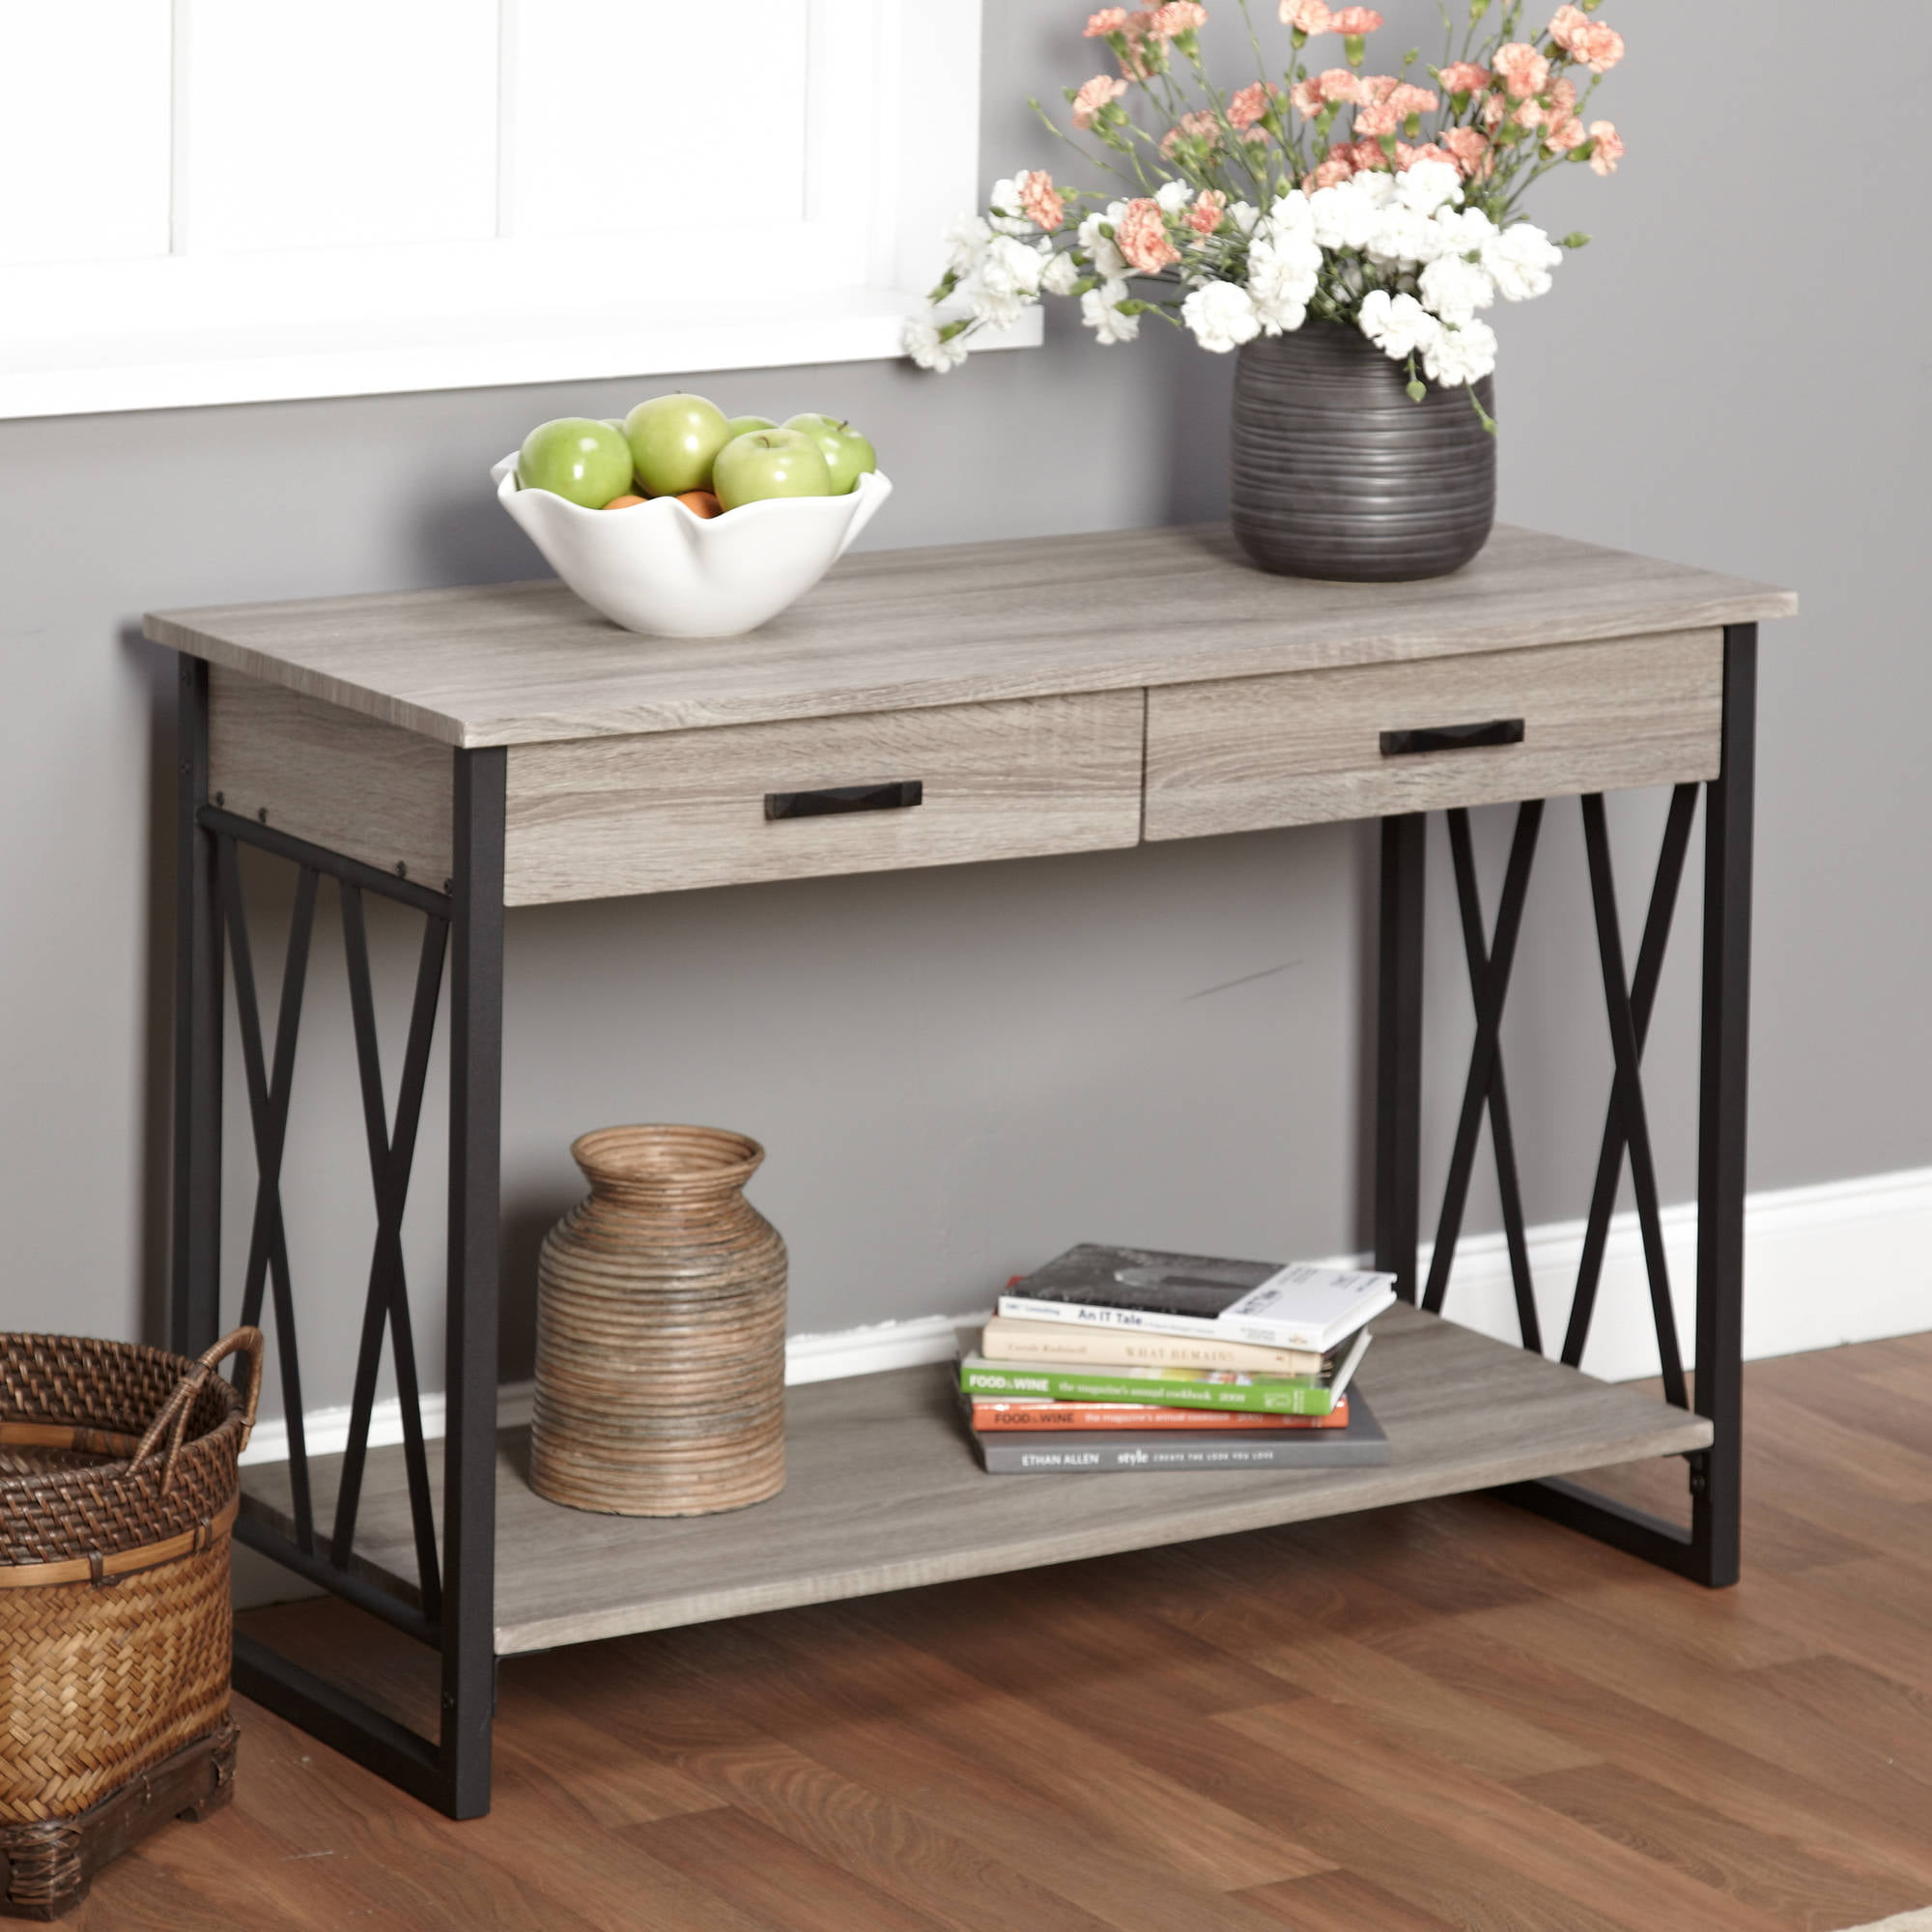 Jaxx collection sofa table multiple colors walmart geotapseo Gallery